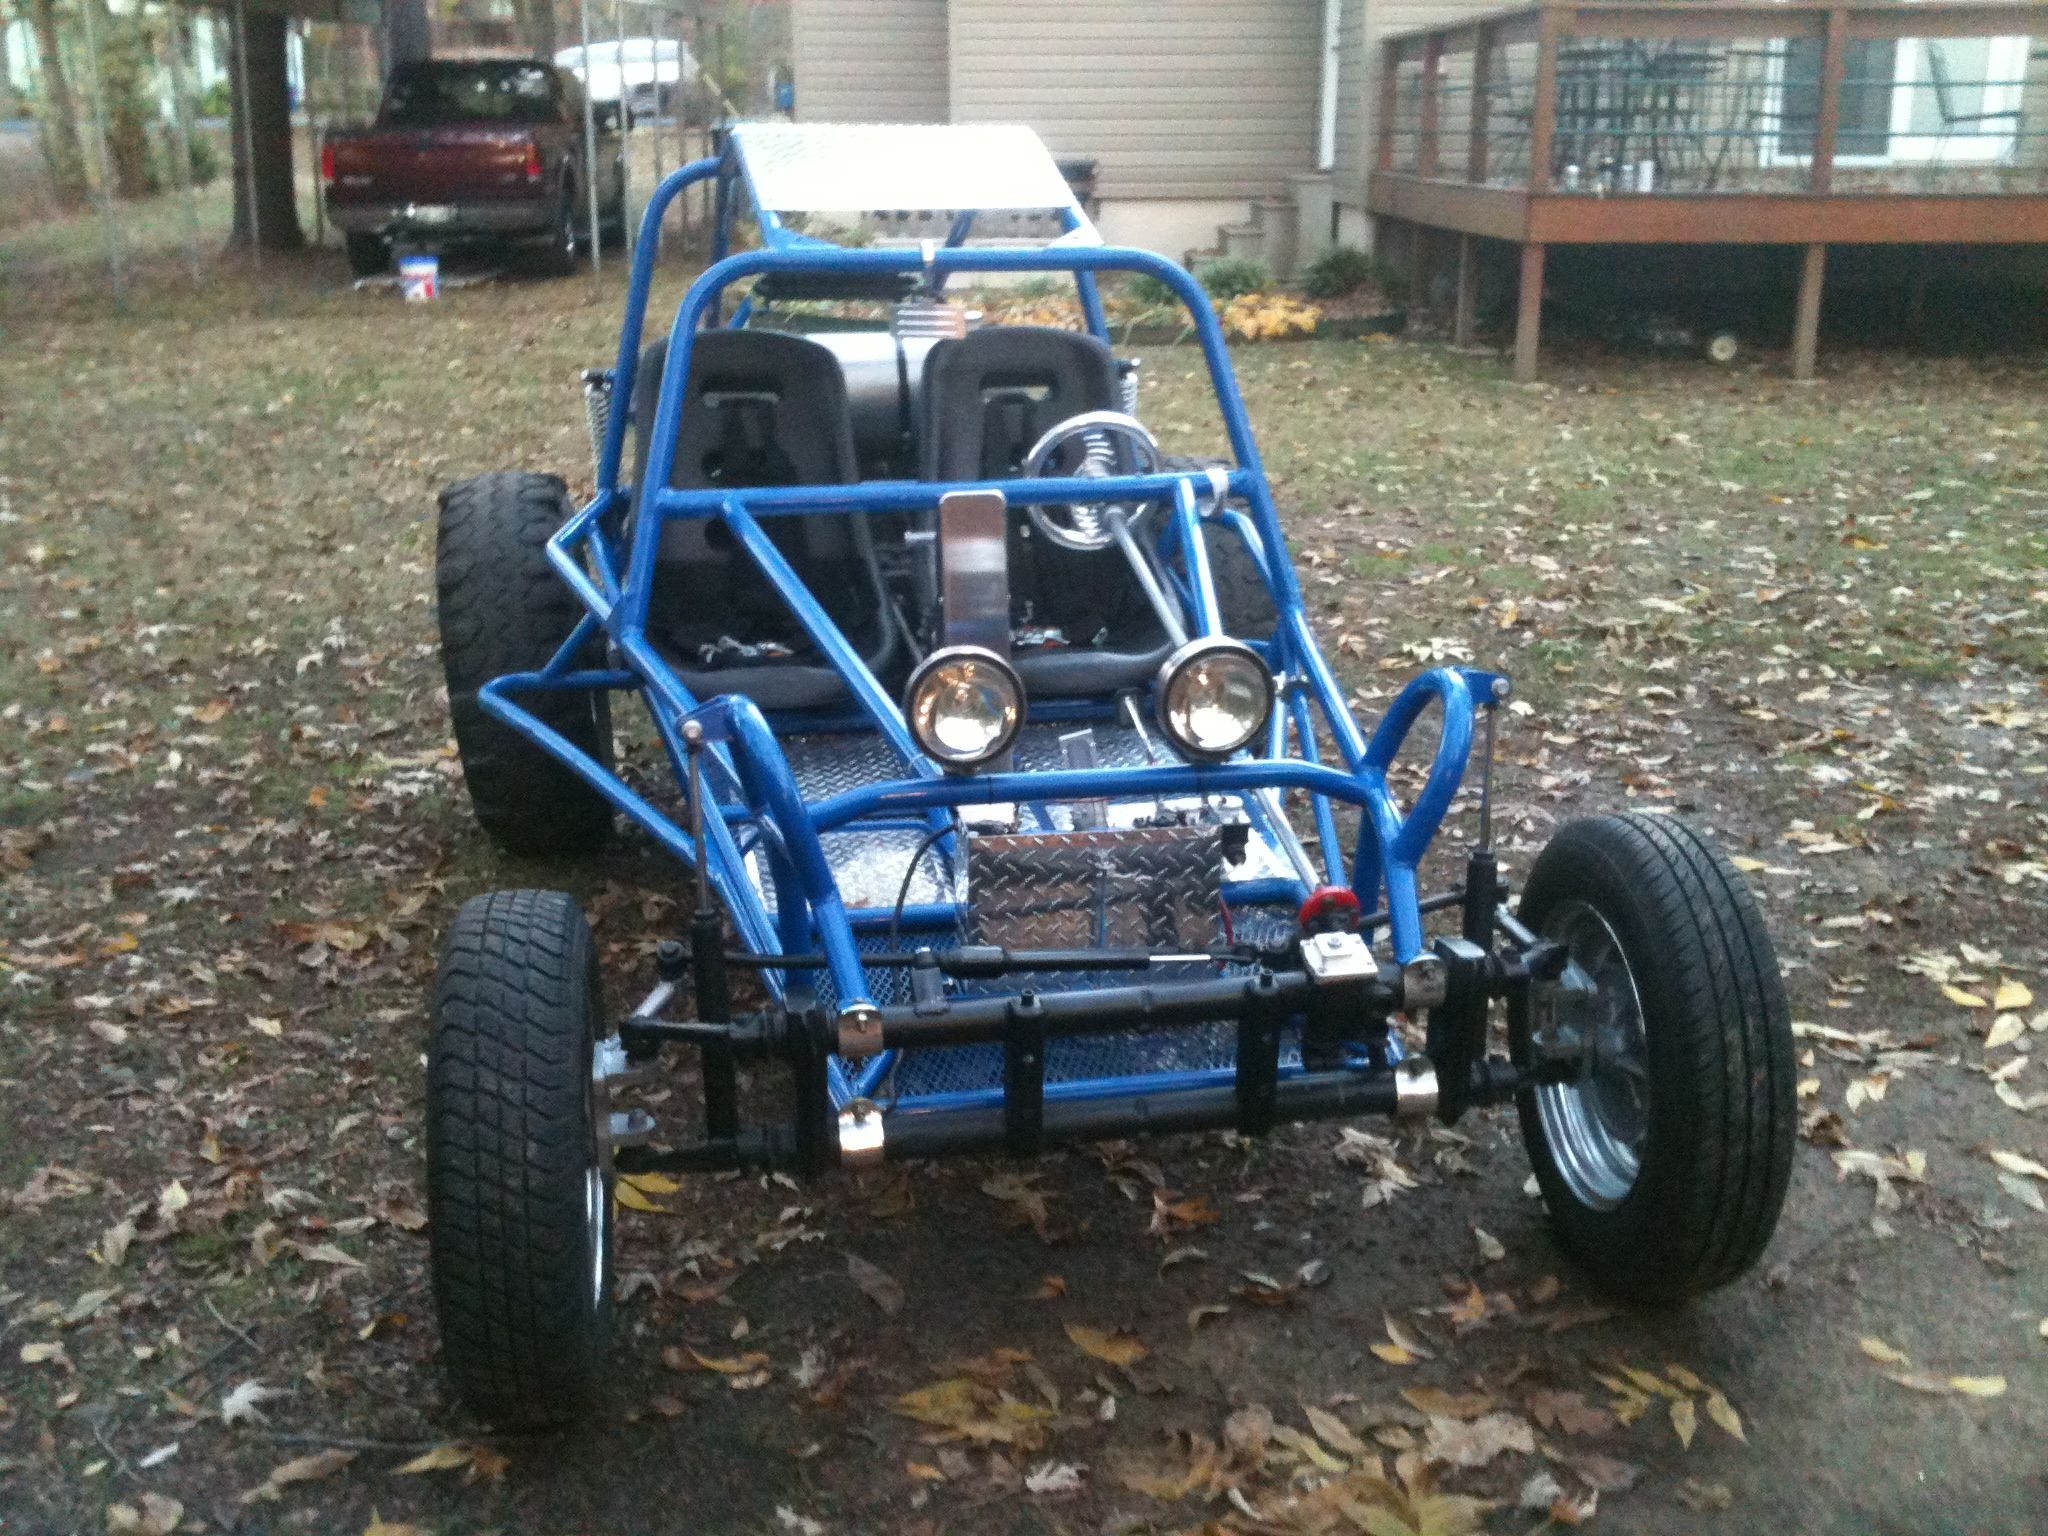 My new rail buggy | Off-road | Pinterest | Entretenimiento, Motor y ...